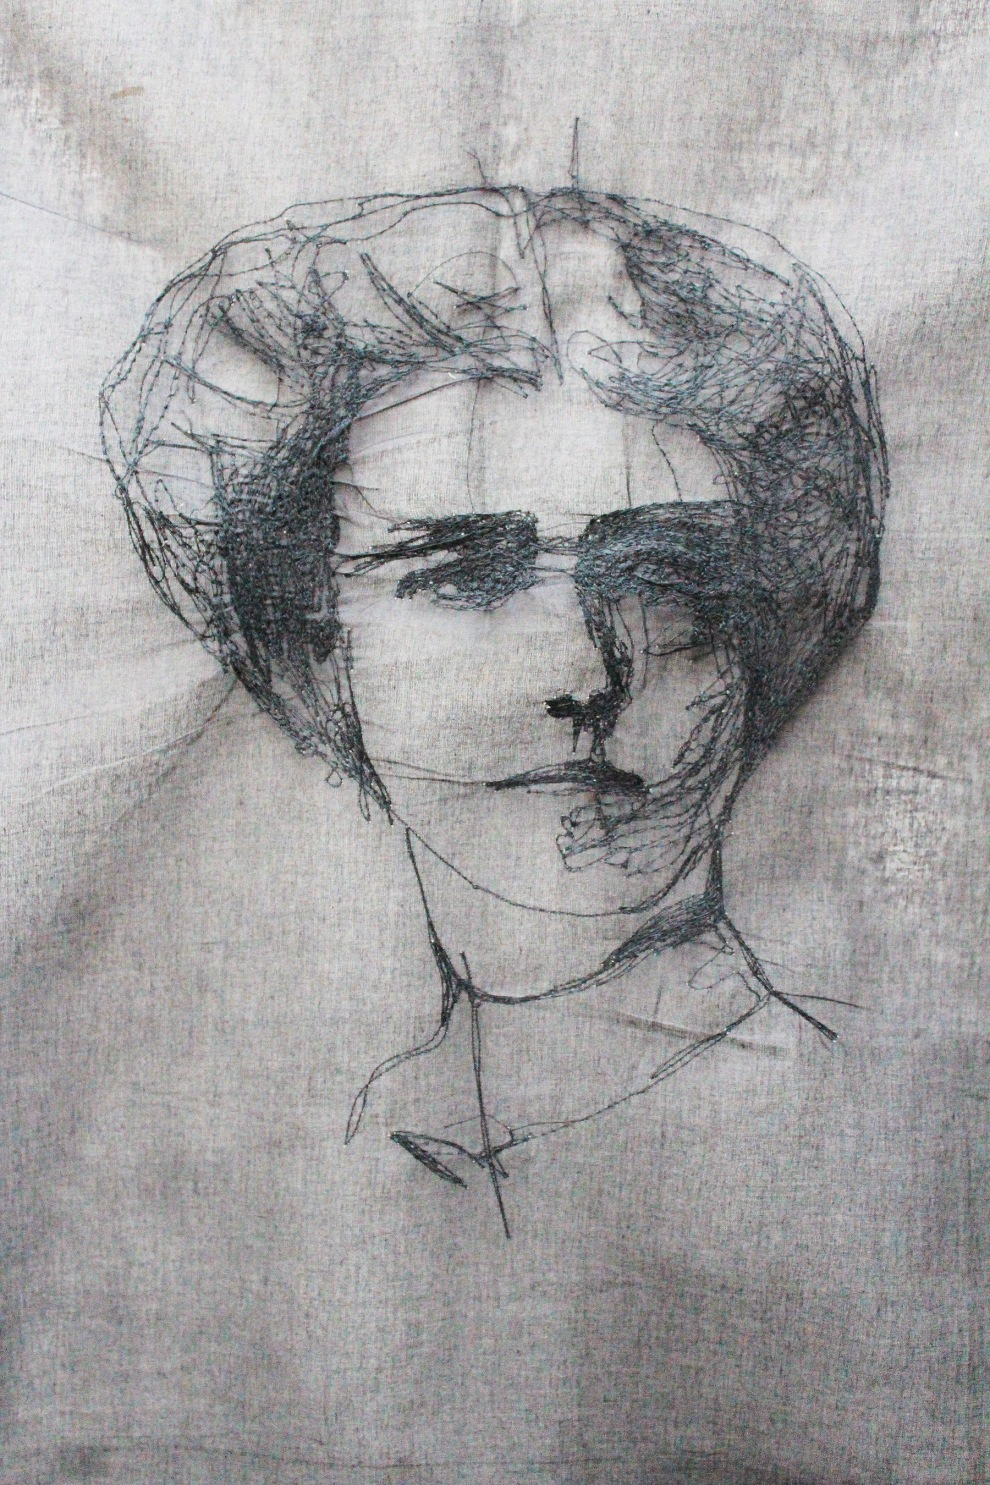 'Kathleen Daly' by Ciara Harrison (from Shadowed Women, 2016)